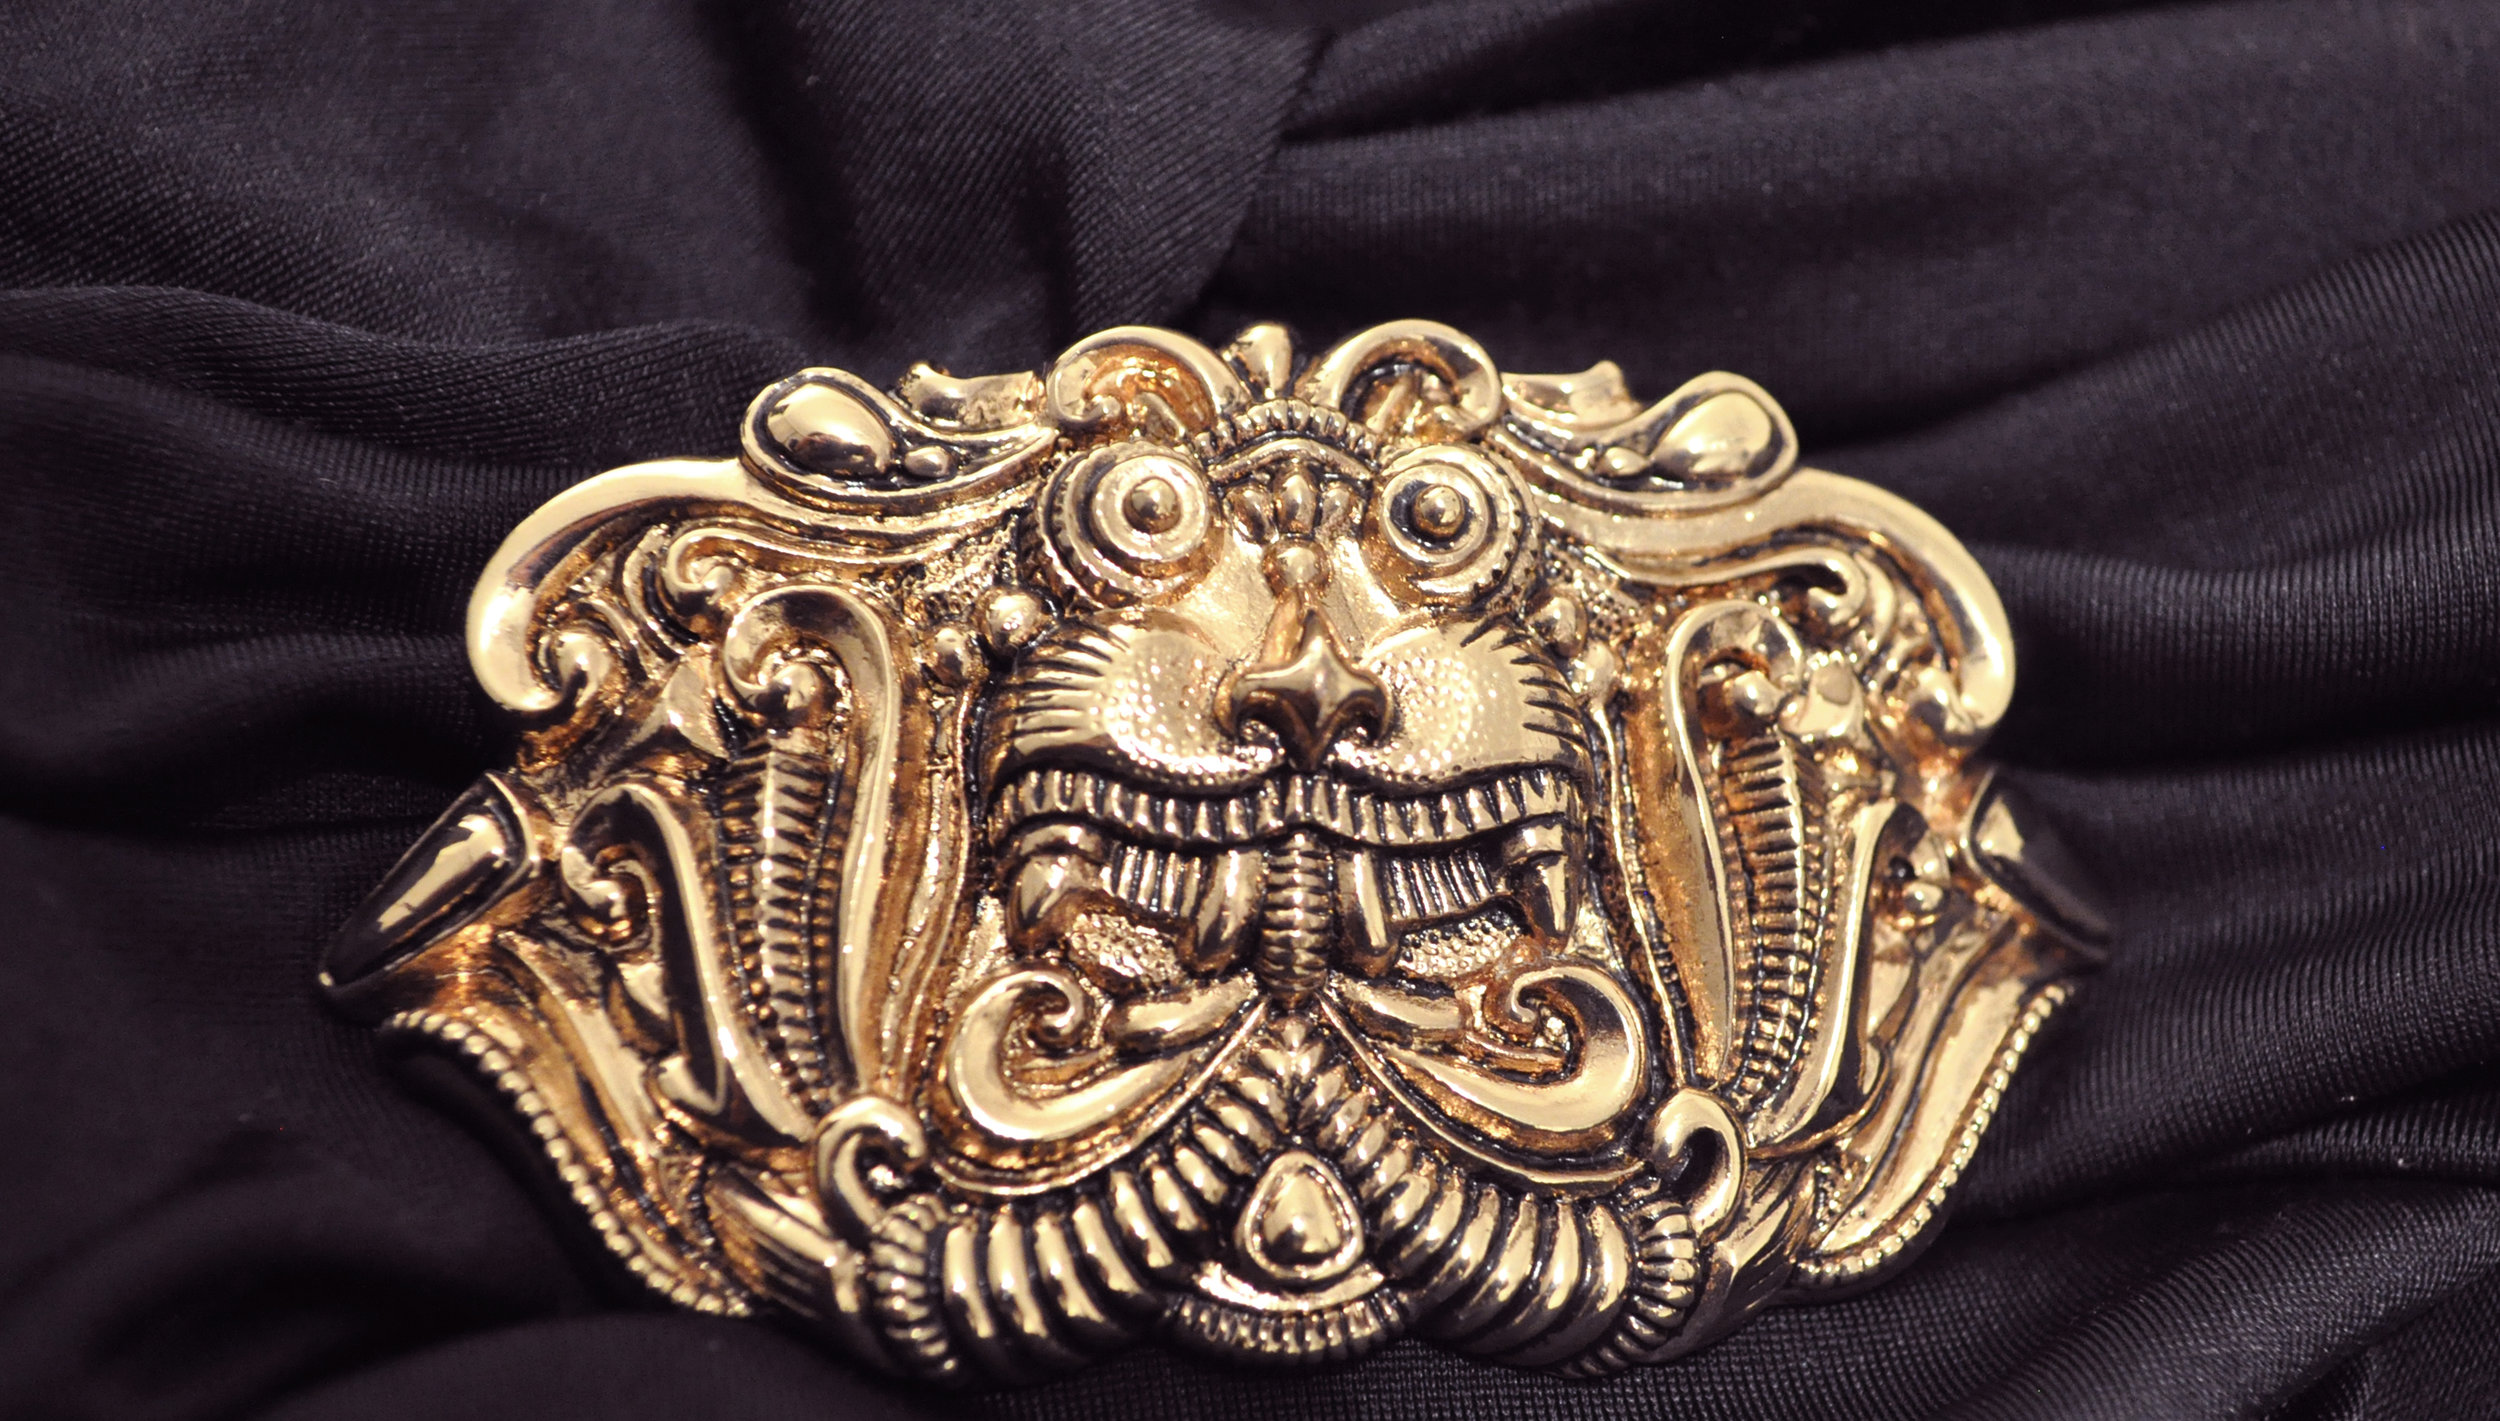 One Of a Kind - Custom made unique design light gold buckle